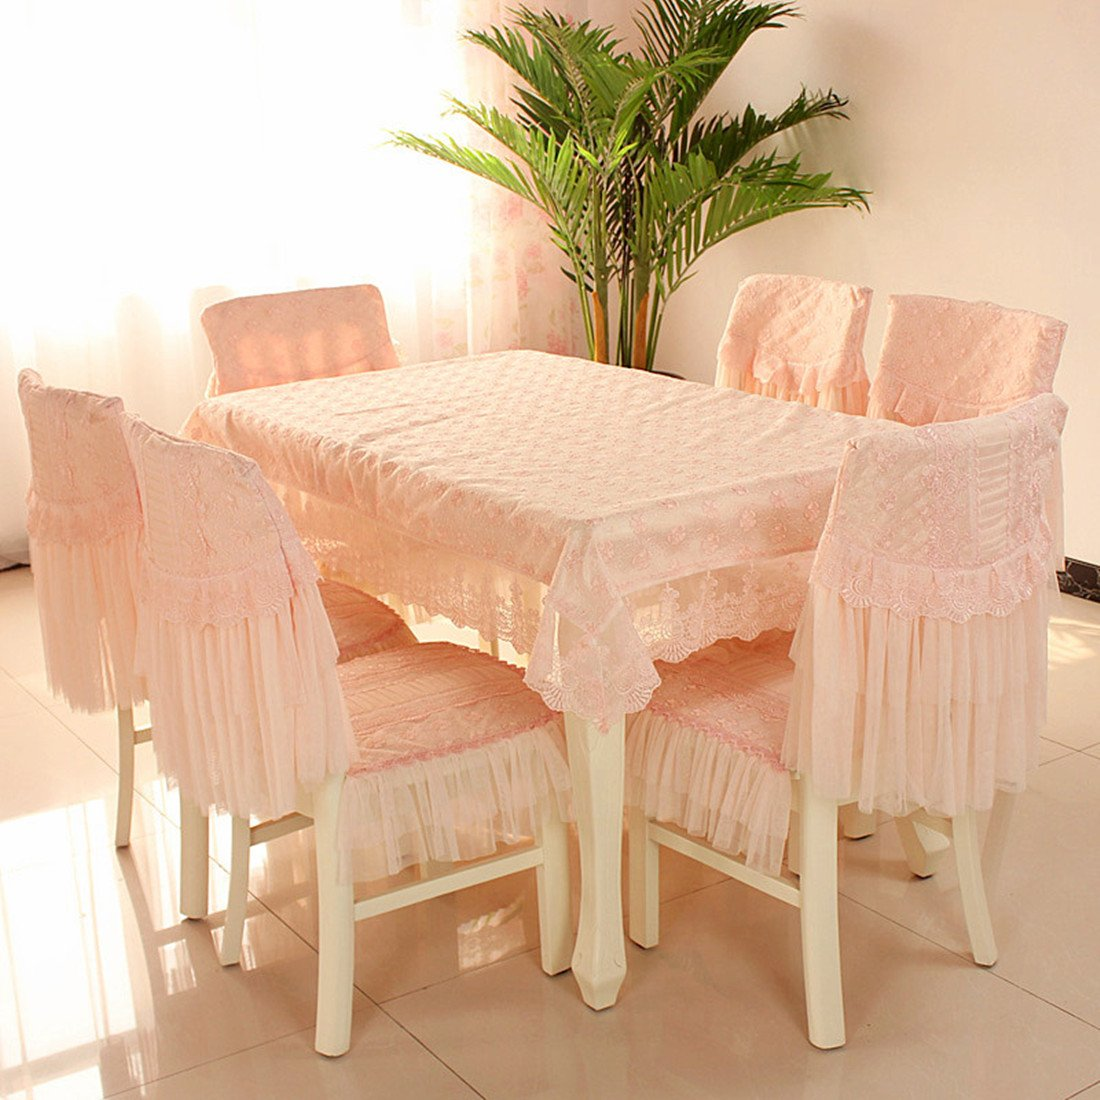 Country style liuxinghuayuan pink check lace chair back cover and cushion cover